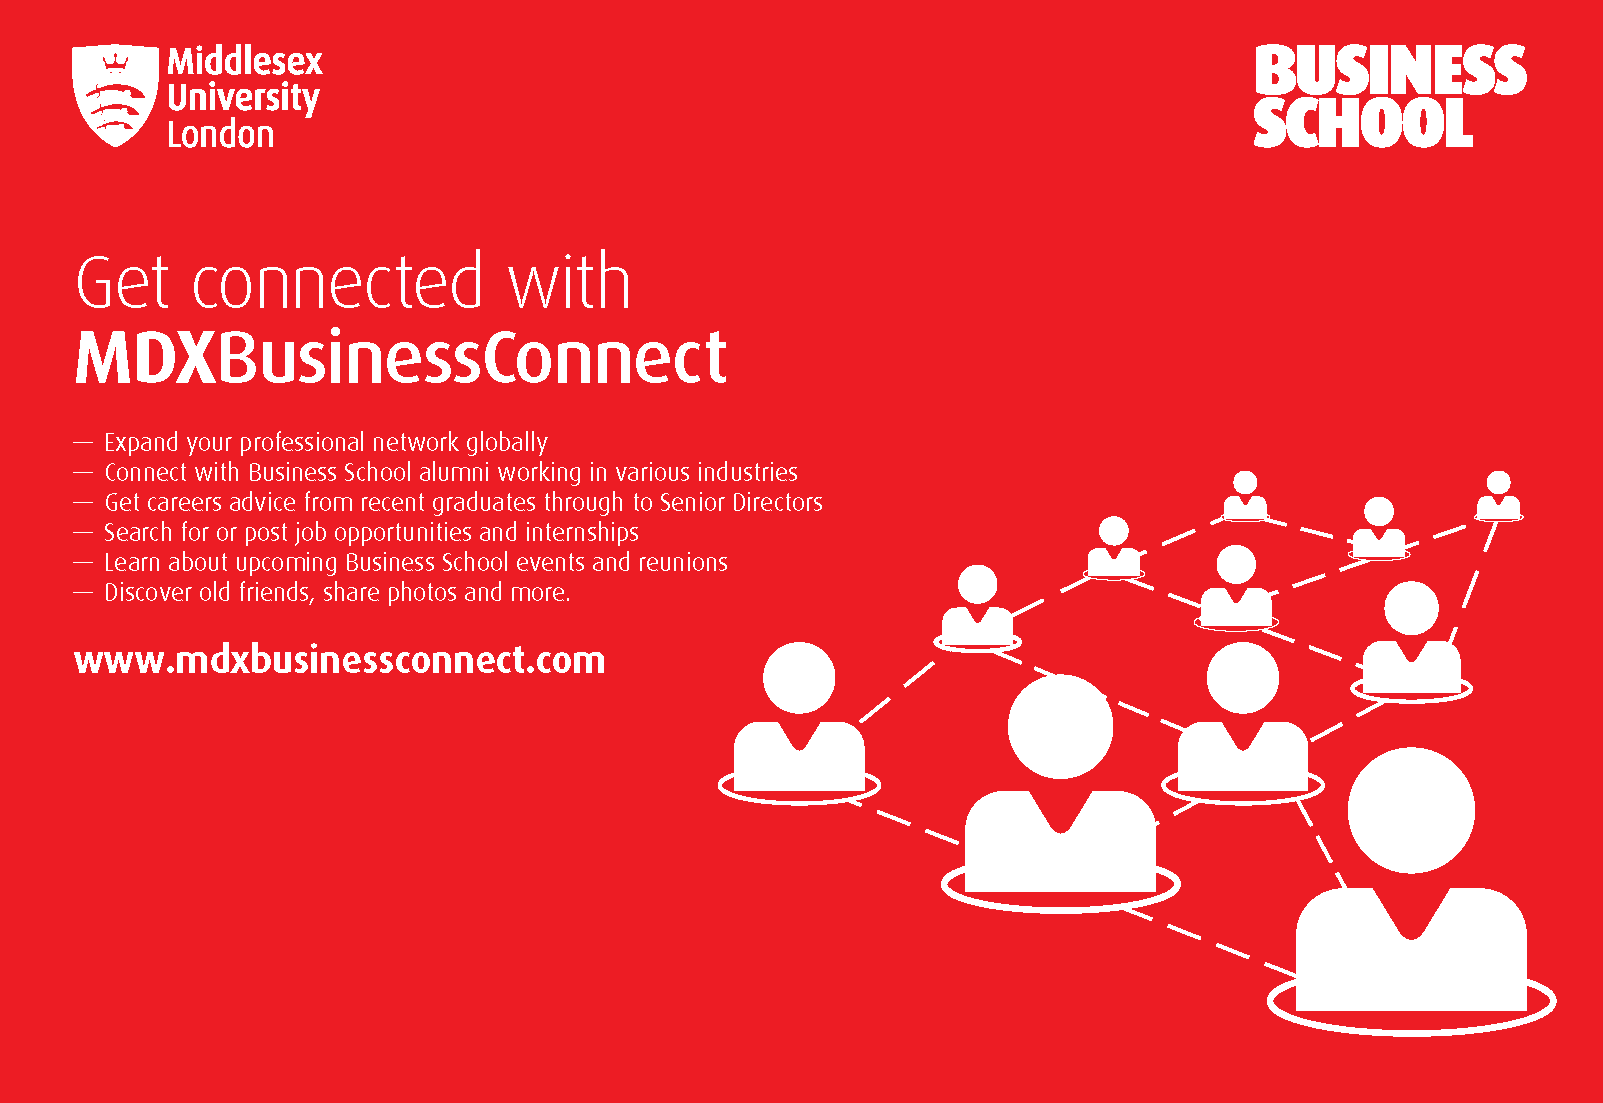 MDXBusinessConnect